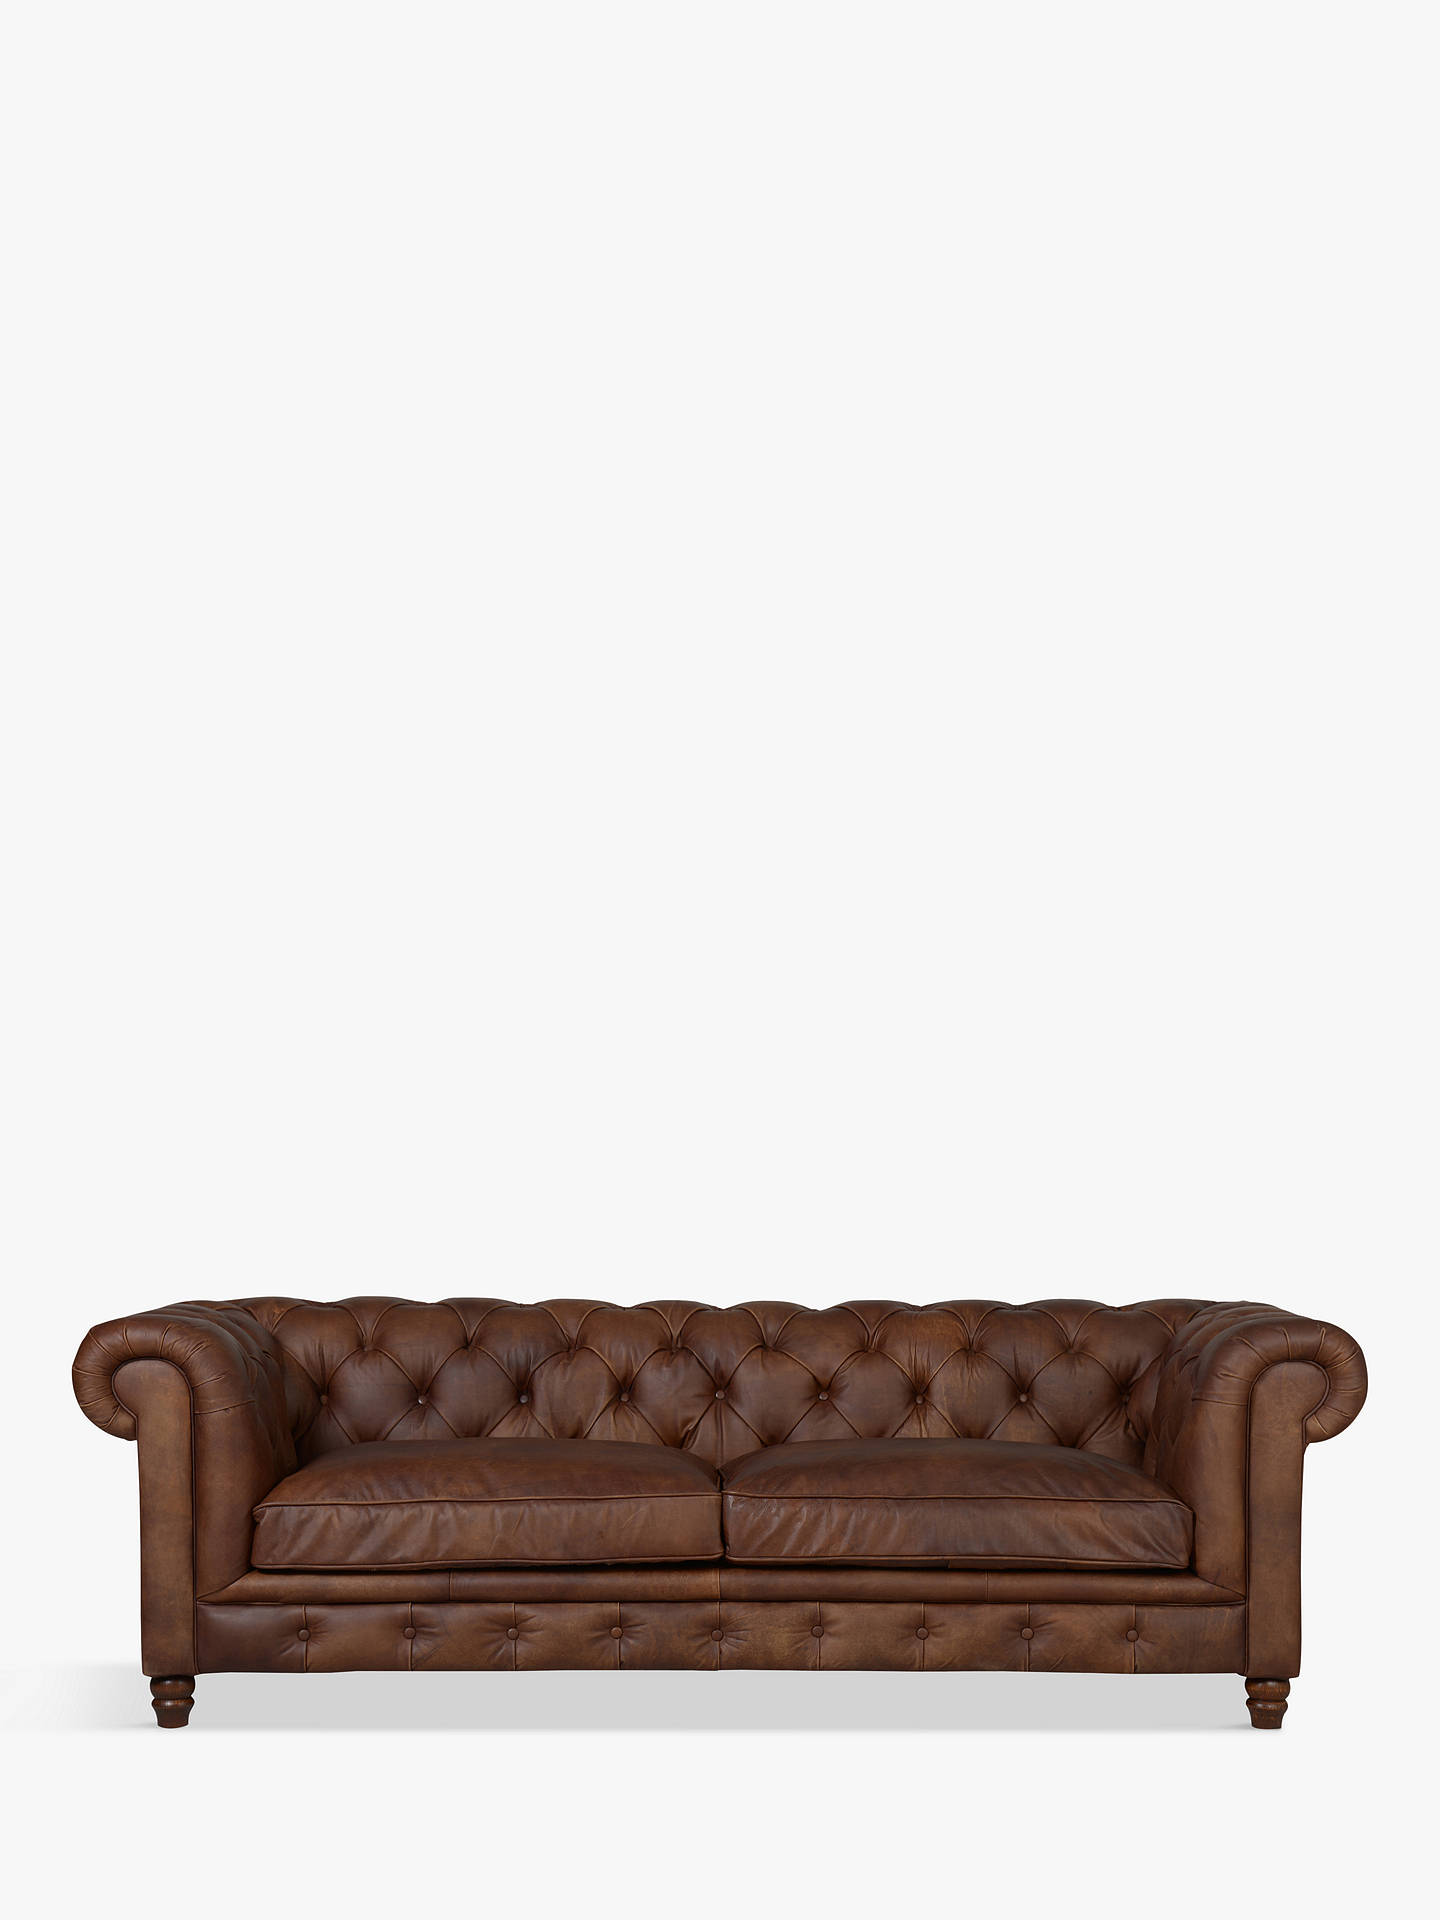 Astounding Halo Earle Chesterfield Grand 4 Seater Leather Sofa Antique Whisky Forskolin Free Trial Chair Design Images Forskolin Free Trialorg